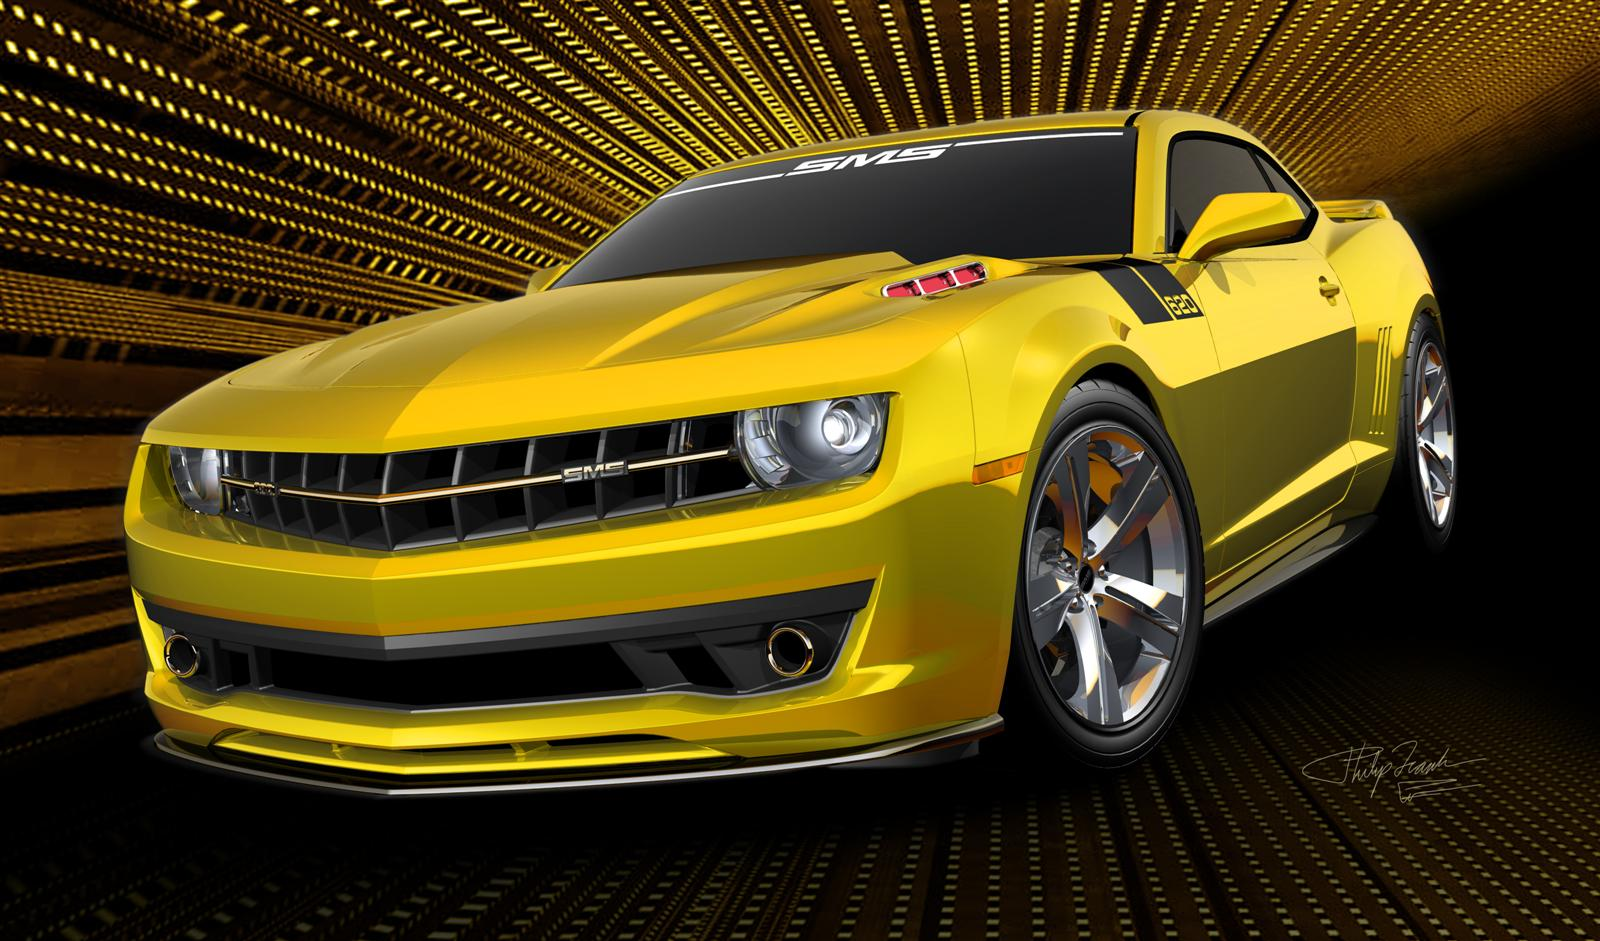 575-HP SMS Supercars SMS 620 Chevrolet Camaro Revealed